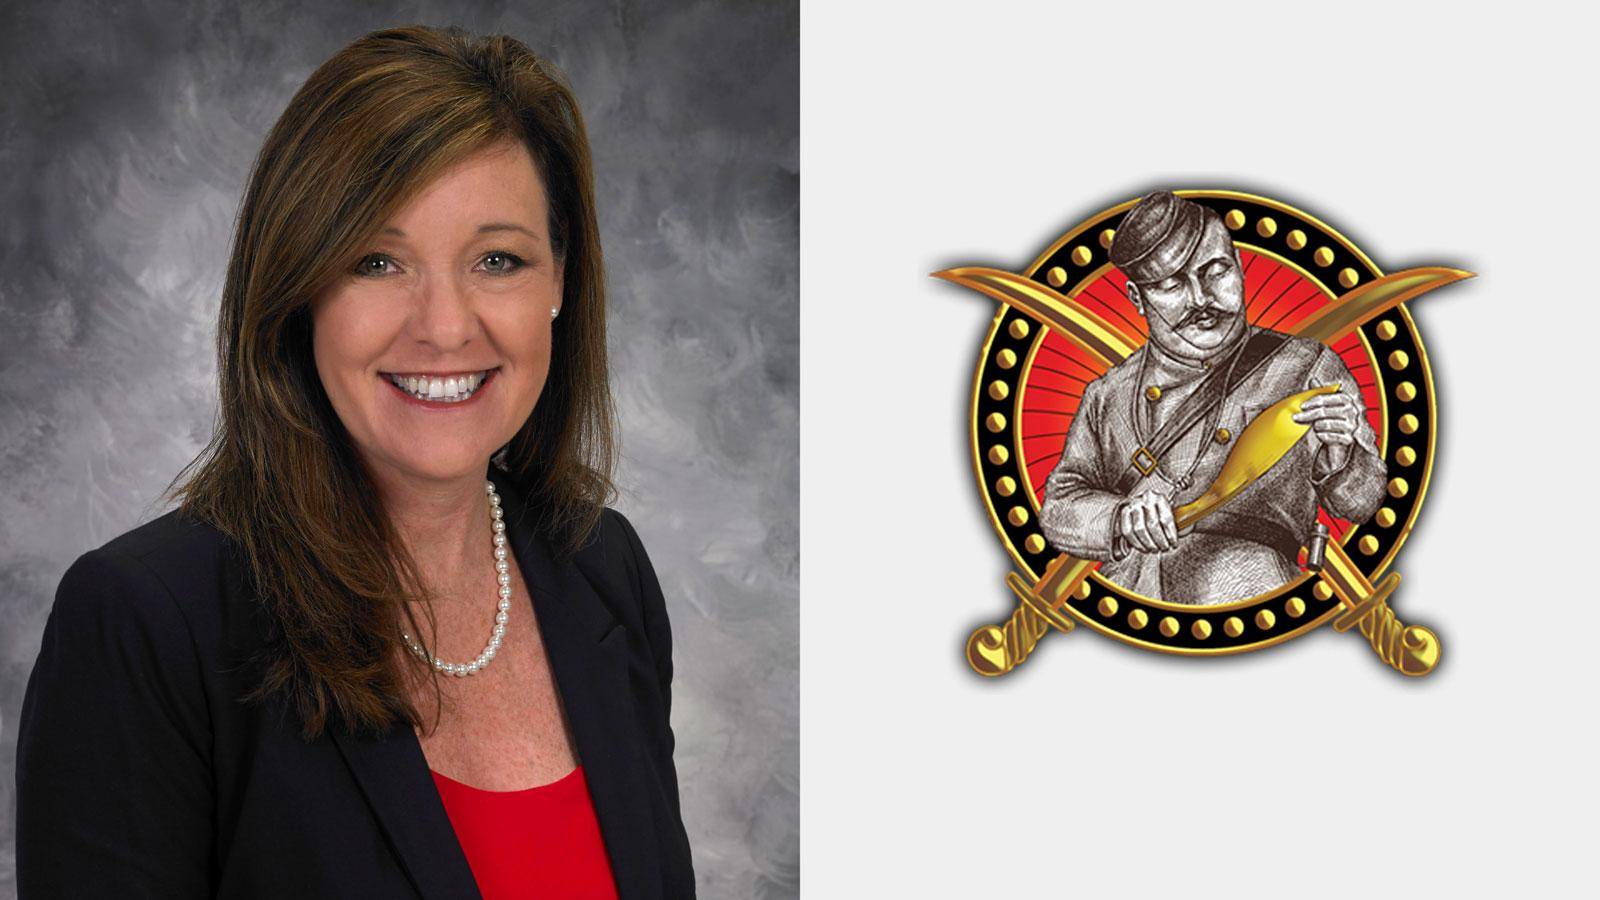 Gurkha Hires Shanda Lee as Marketing Director